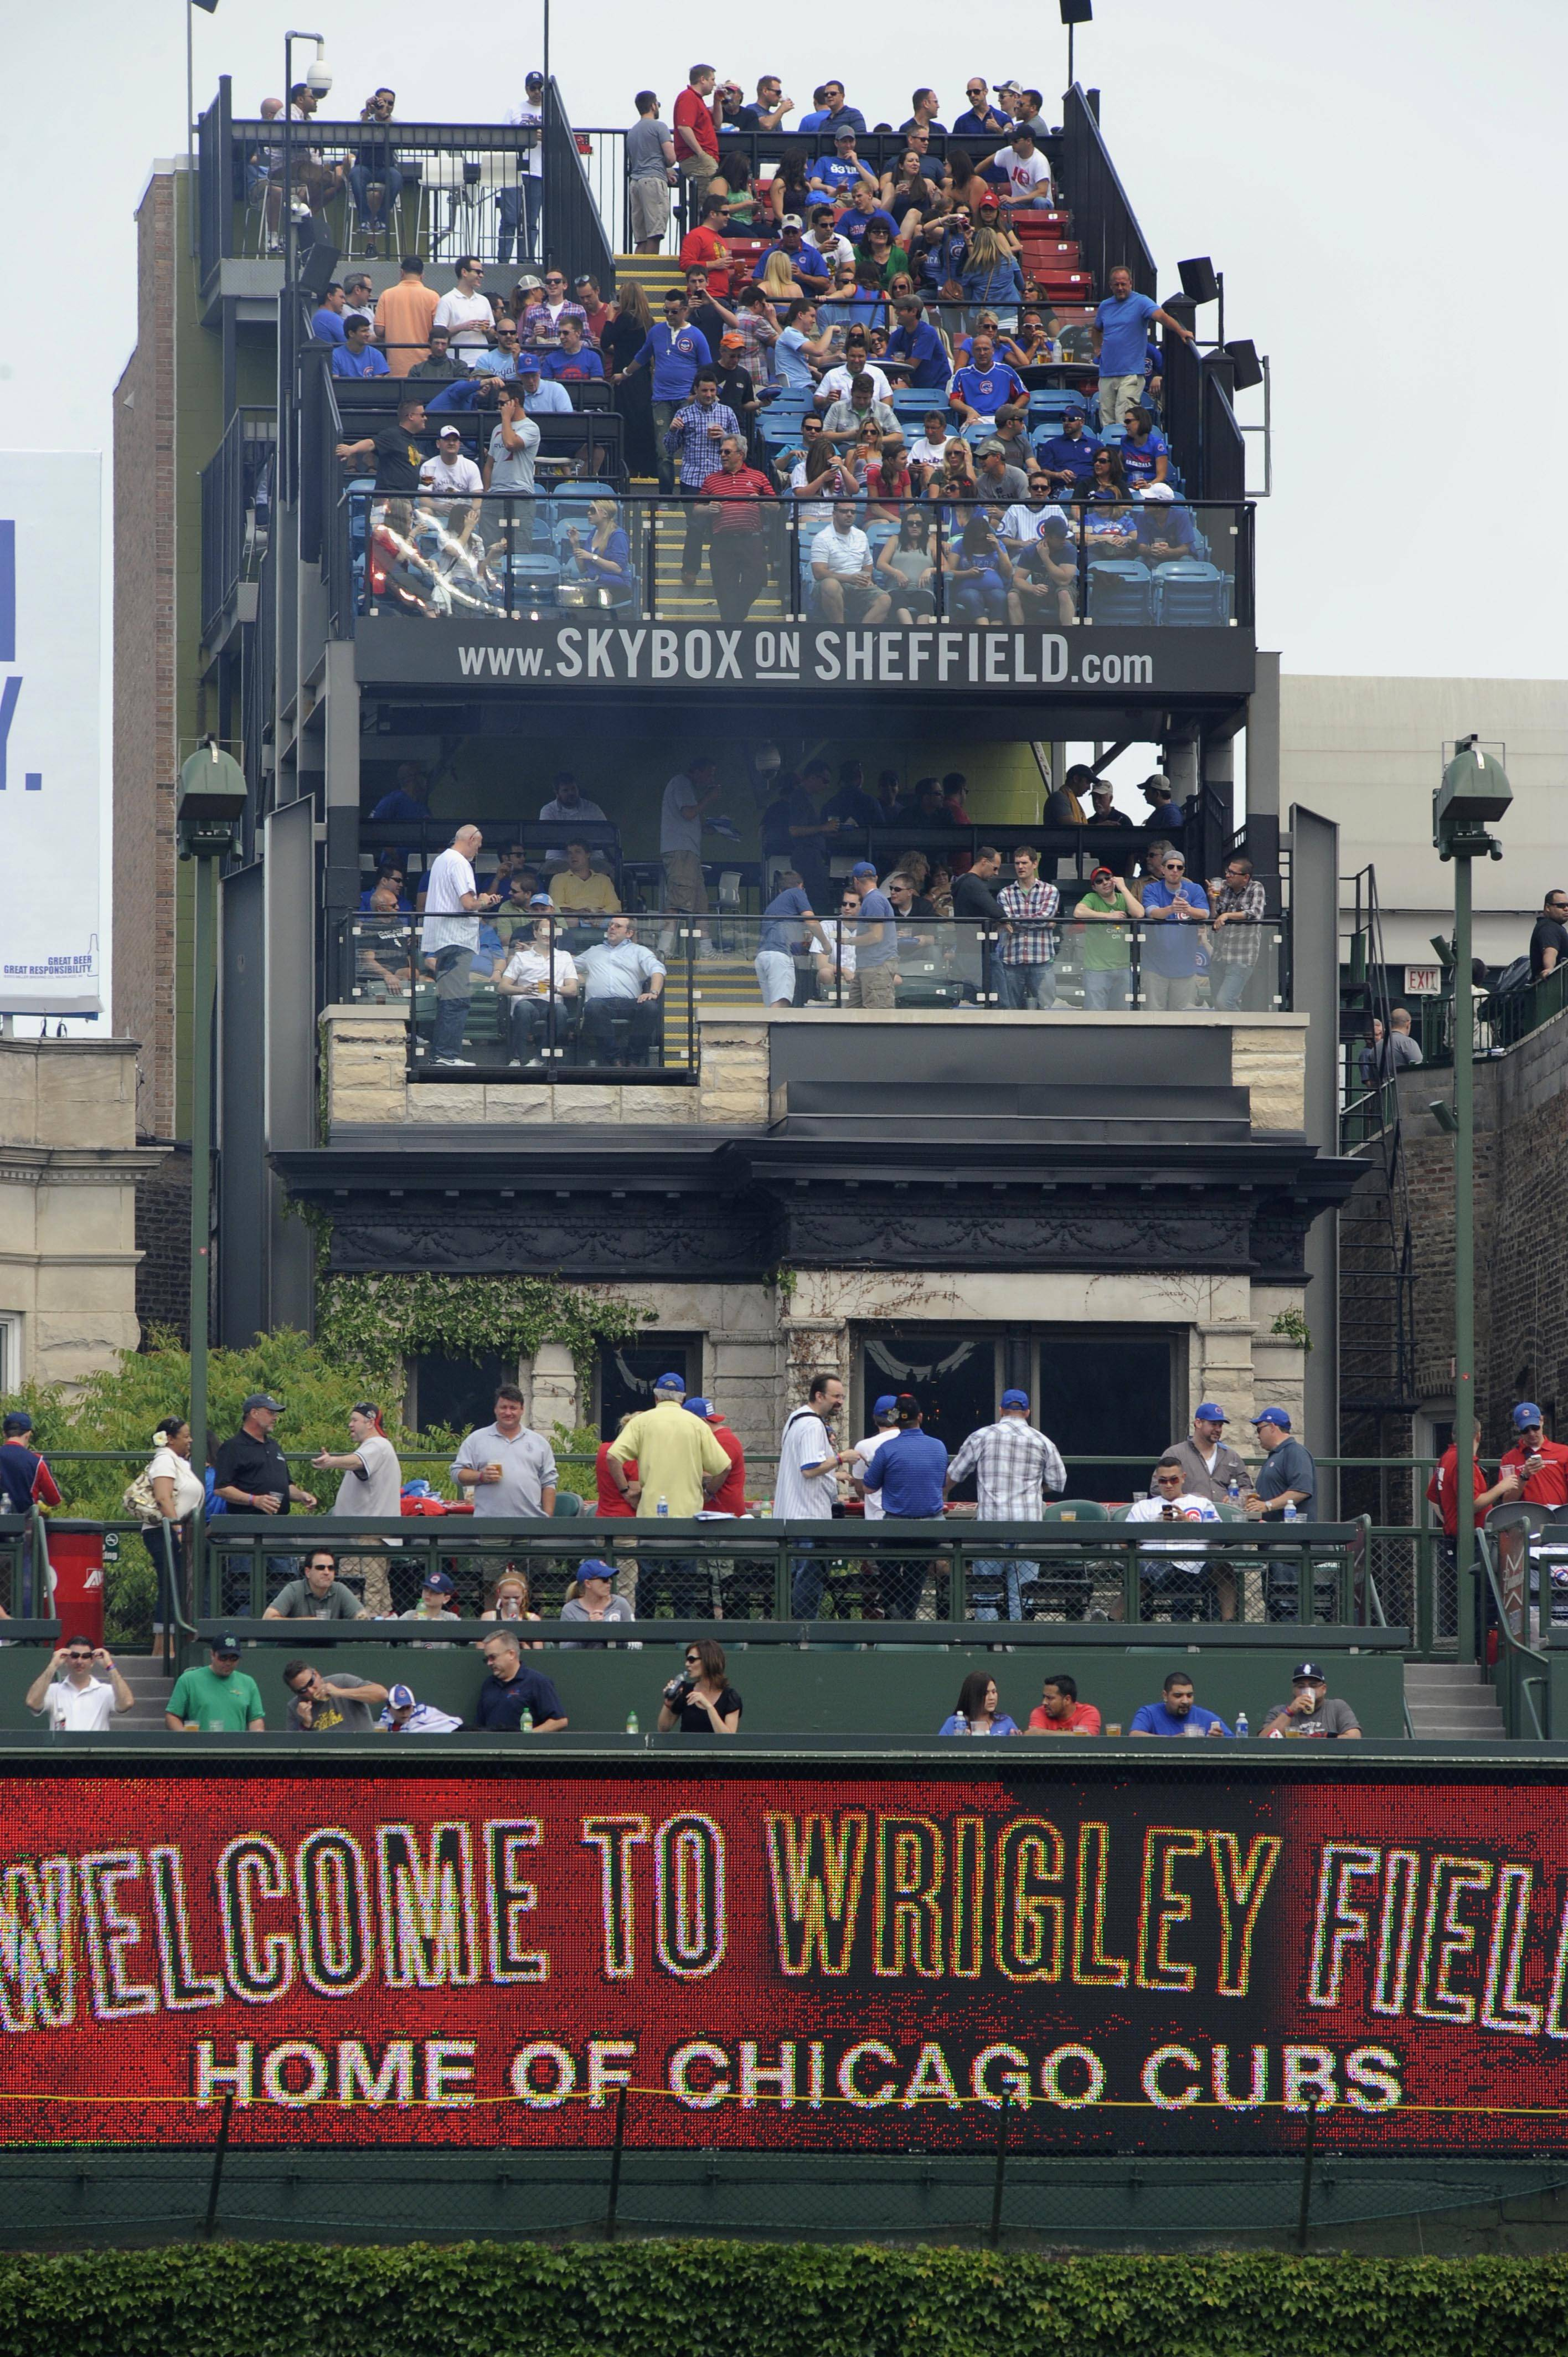 Cubs chairman Tom Ricketts said Friday the organization will move ahead with renovation plans for Wrigley Field, but he did not offer a start date. Ricketts said he expects to continue to talk with rooftop owners who disagreed with the ruling by the city's Landmarks Commission to approve plans by the Cubs.